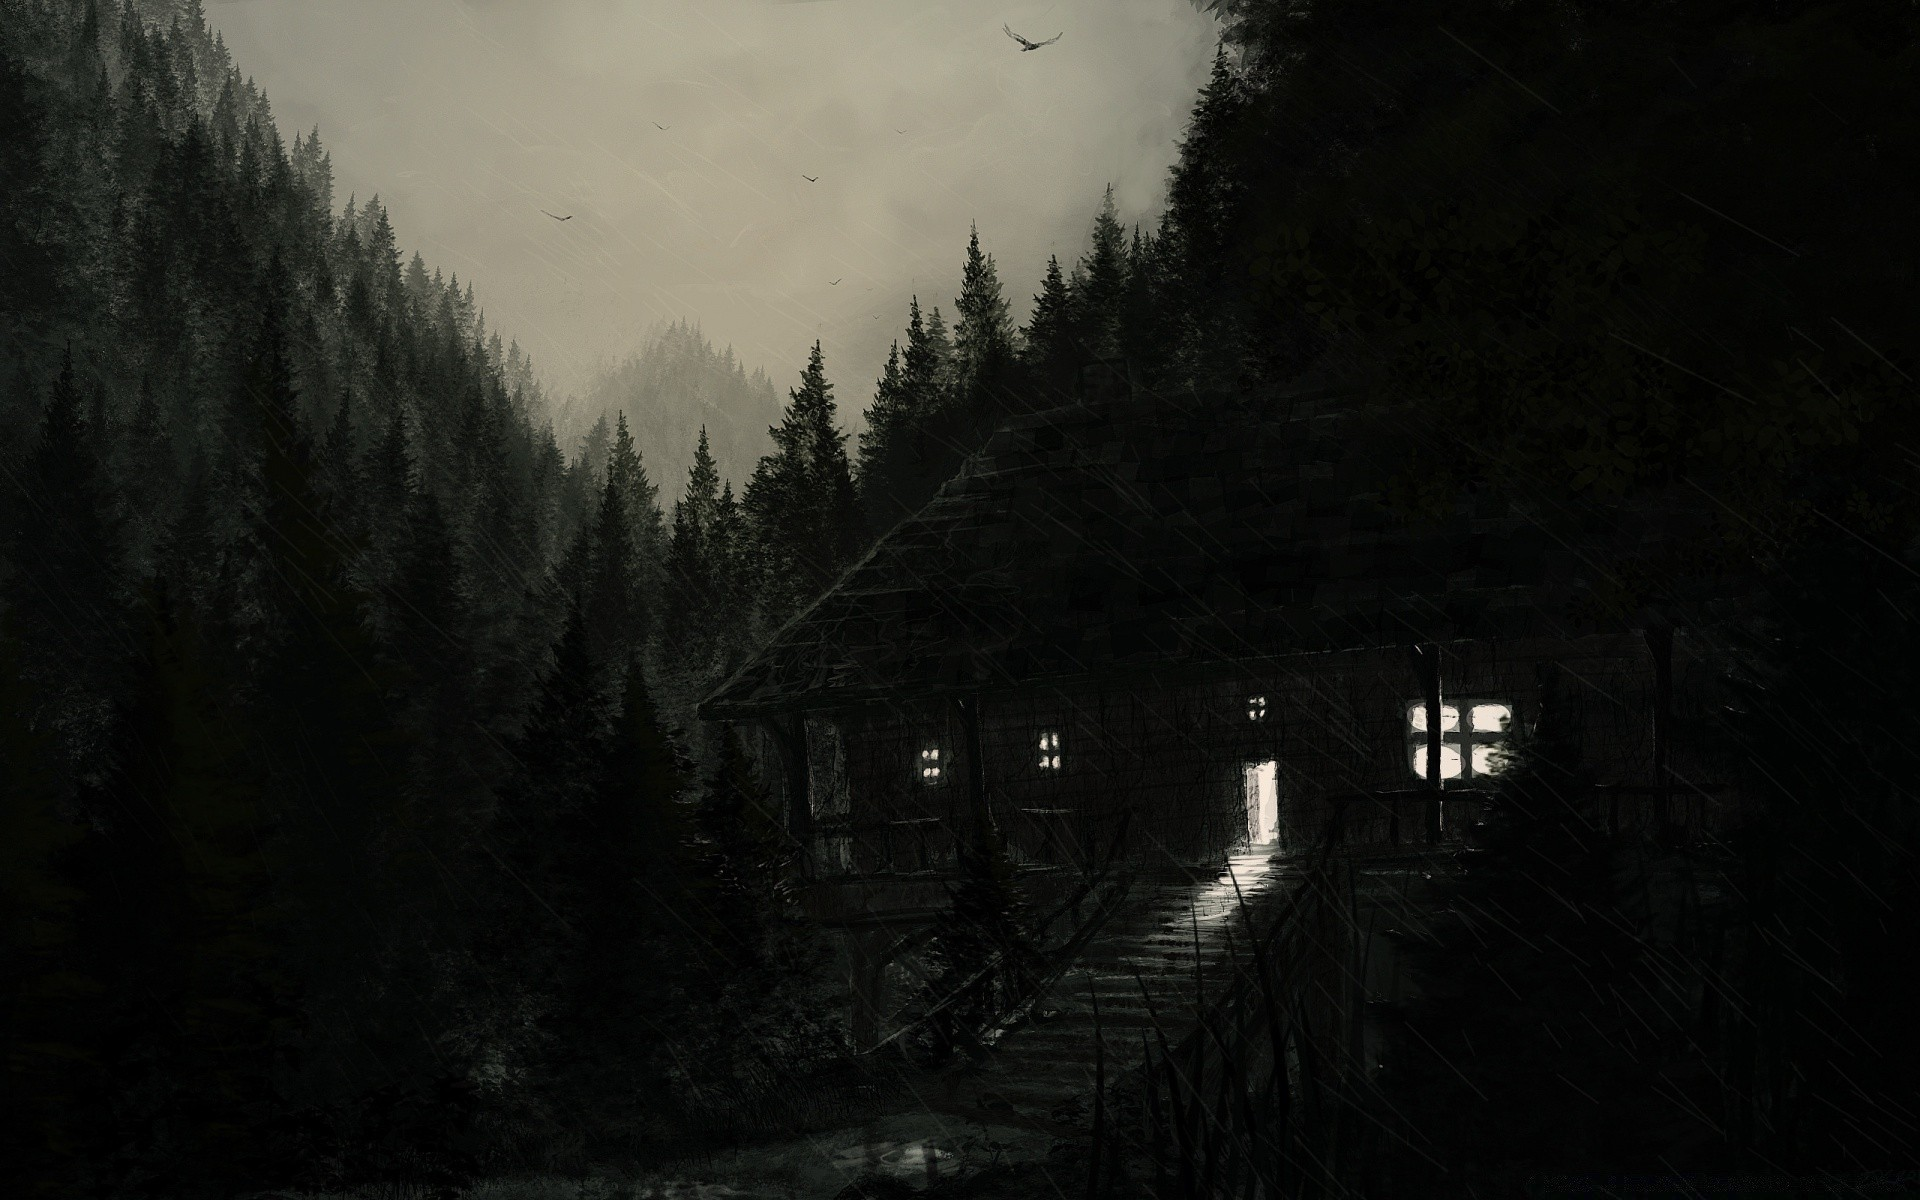 Rainy Night Painting Android Wallpapers For Free